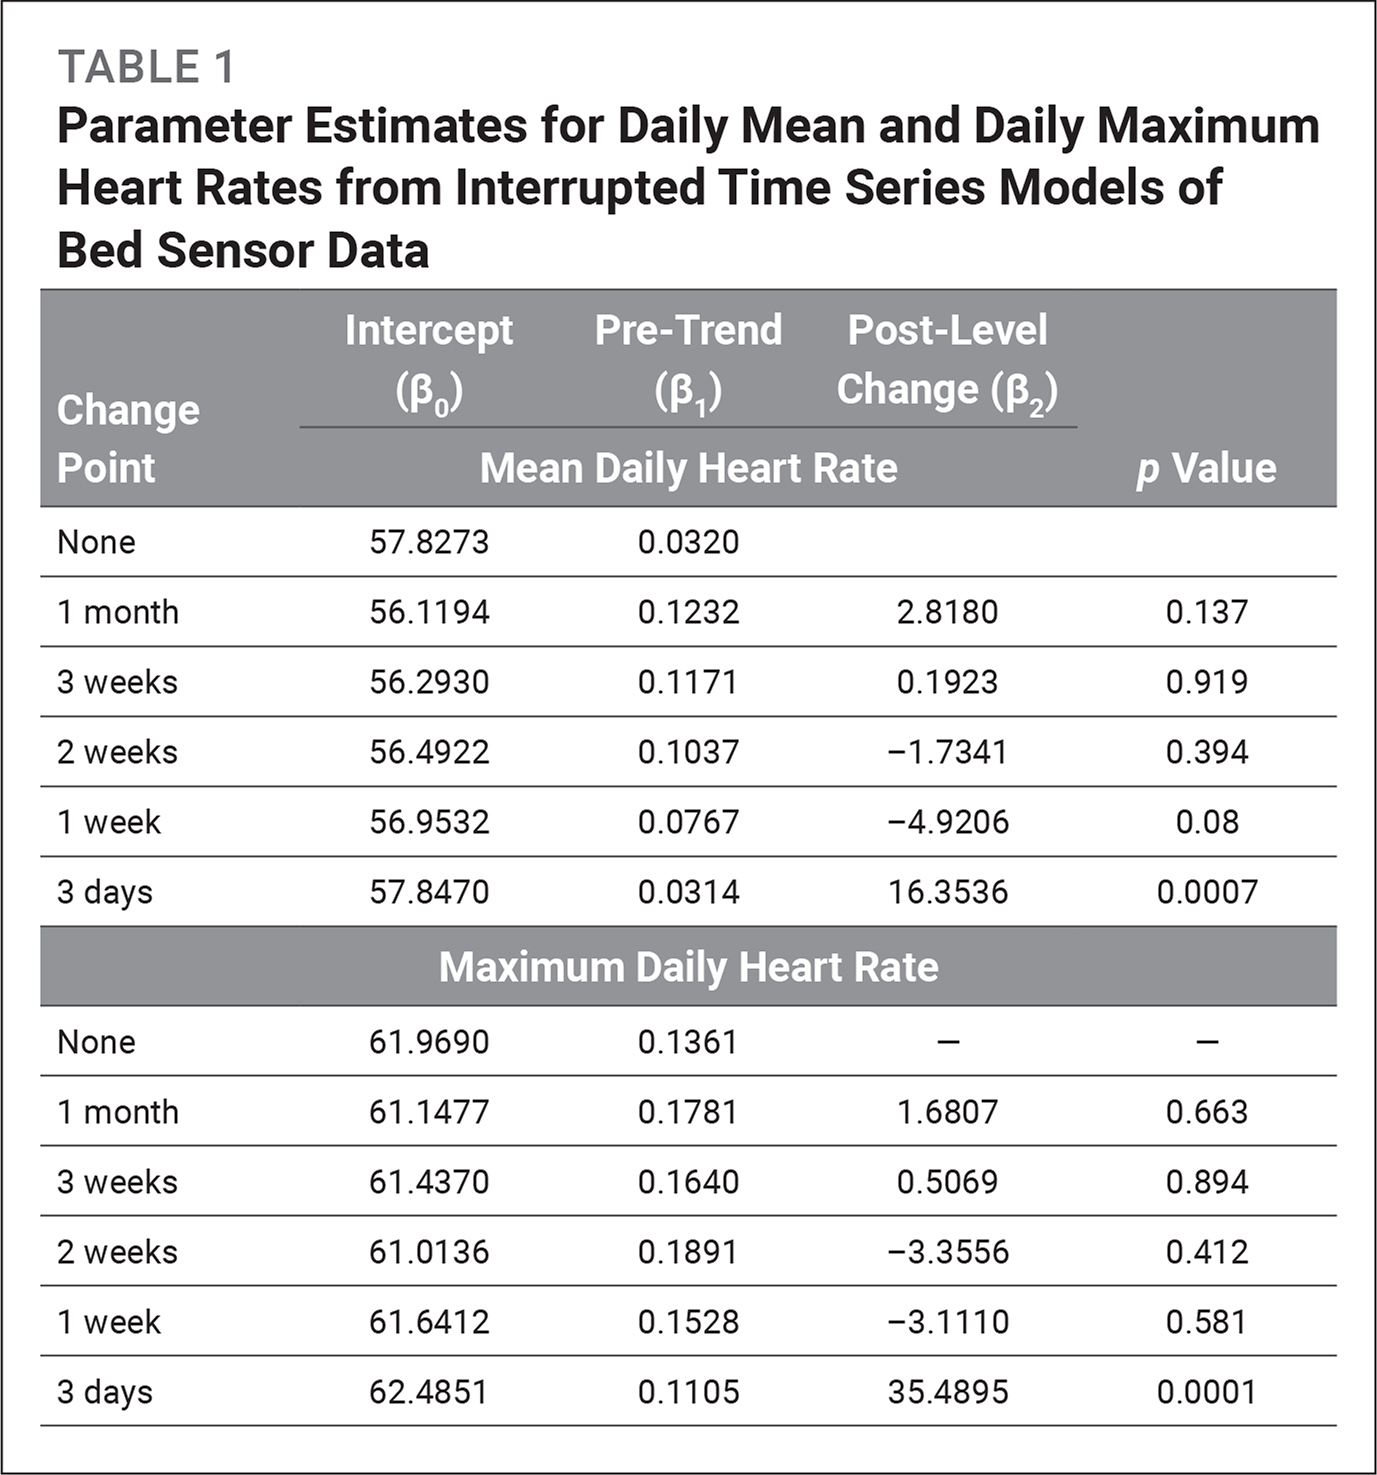 Parameter Estimates for Daily Mean and Daily Maximum Heart Rates from Interrupted Time Series Models of Bed Sensor Data